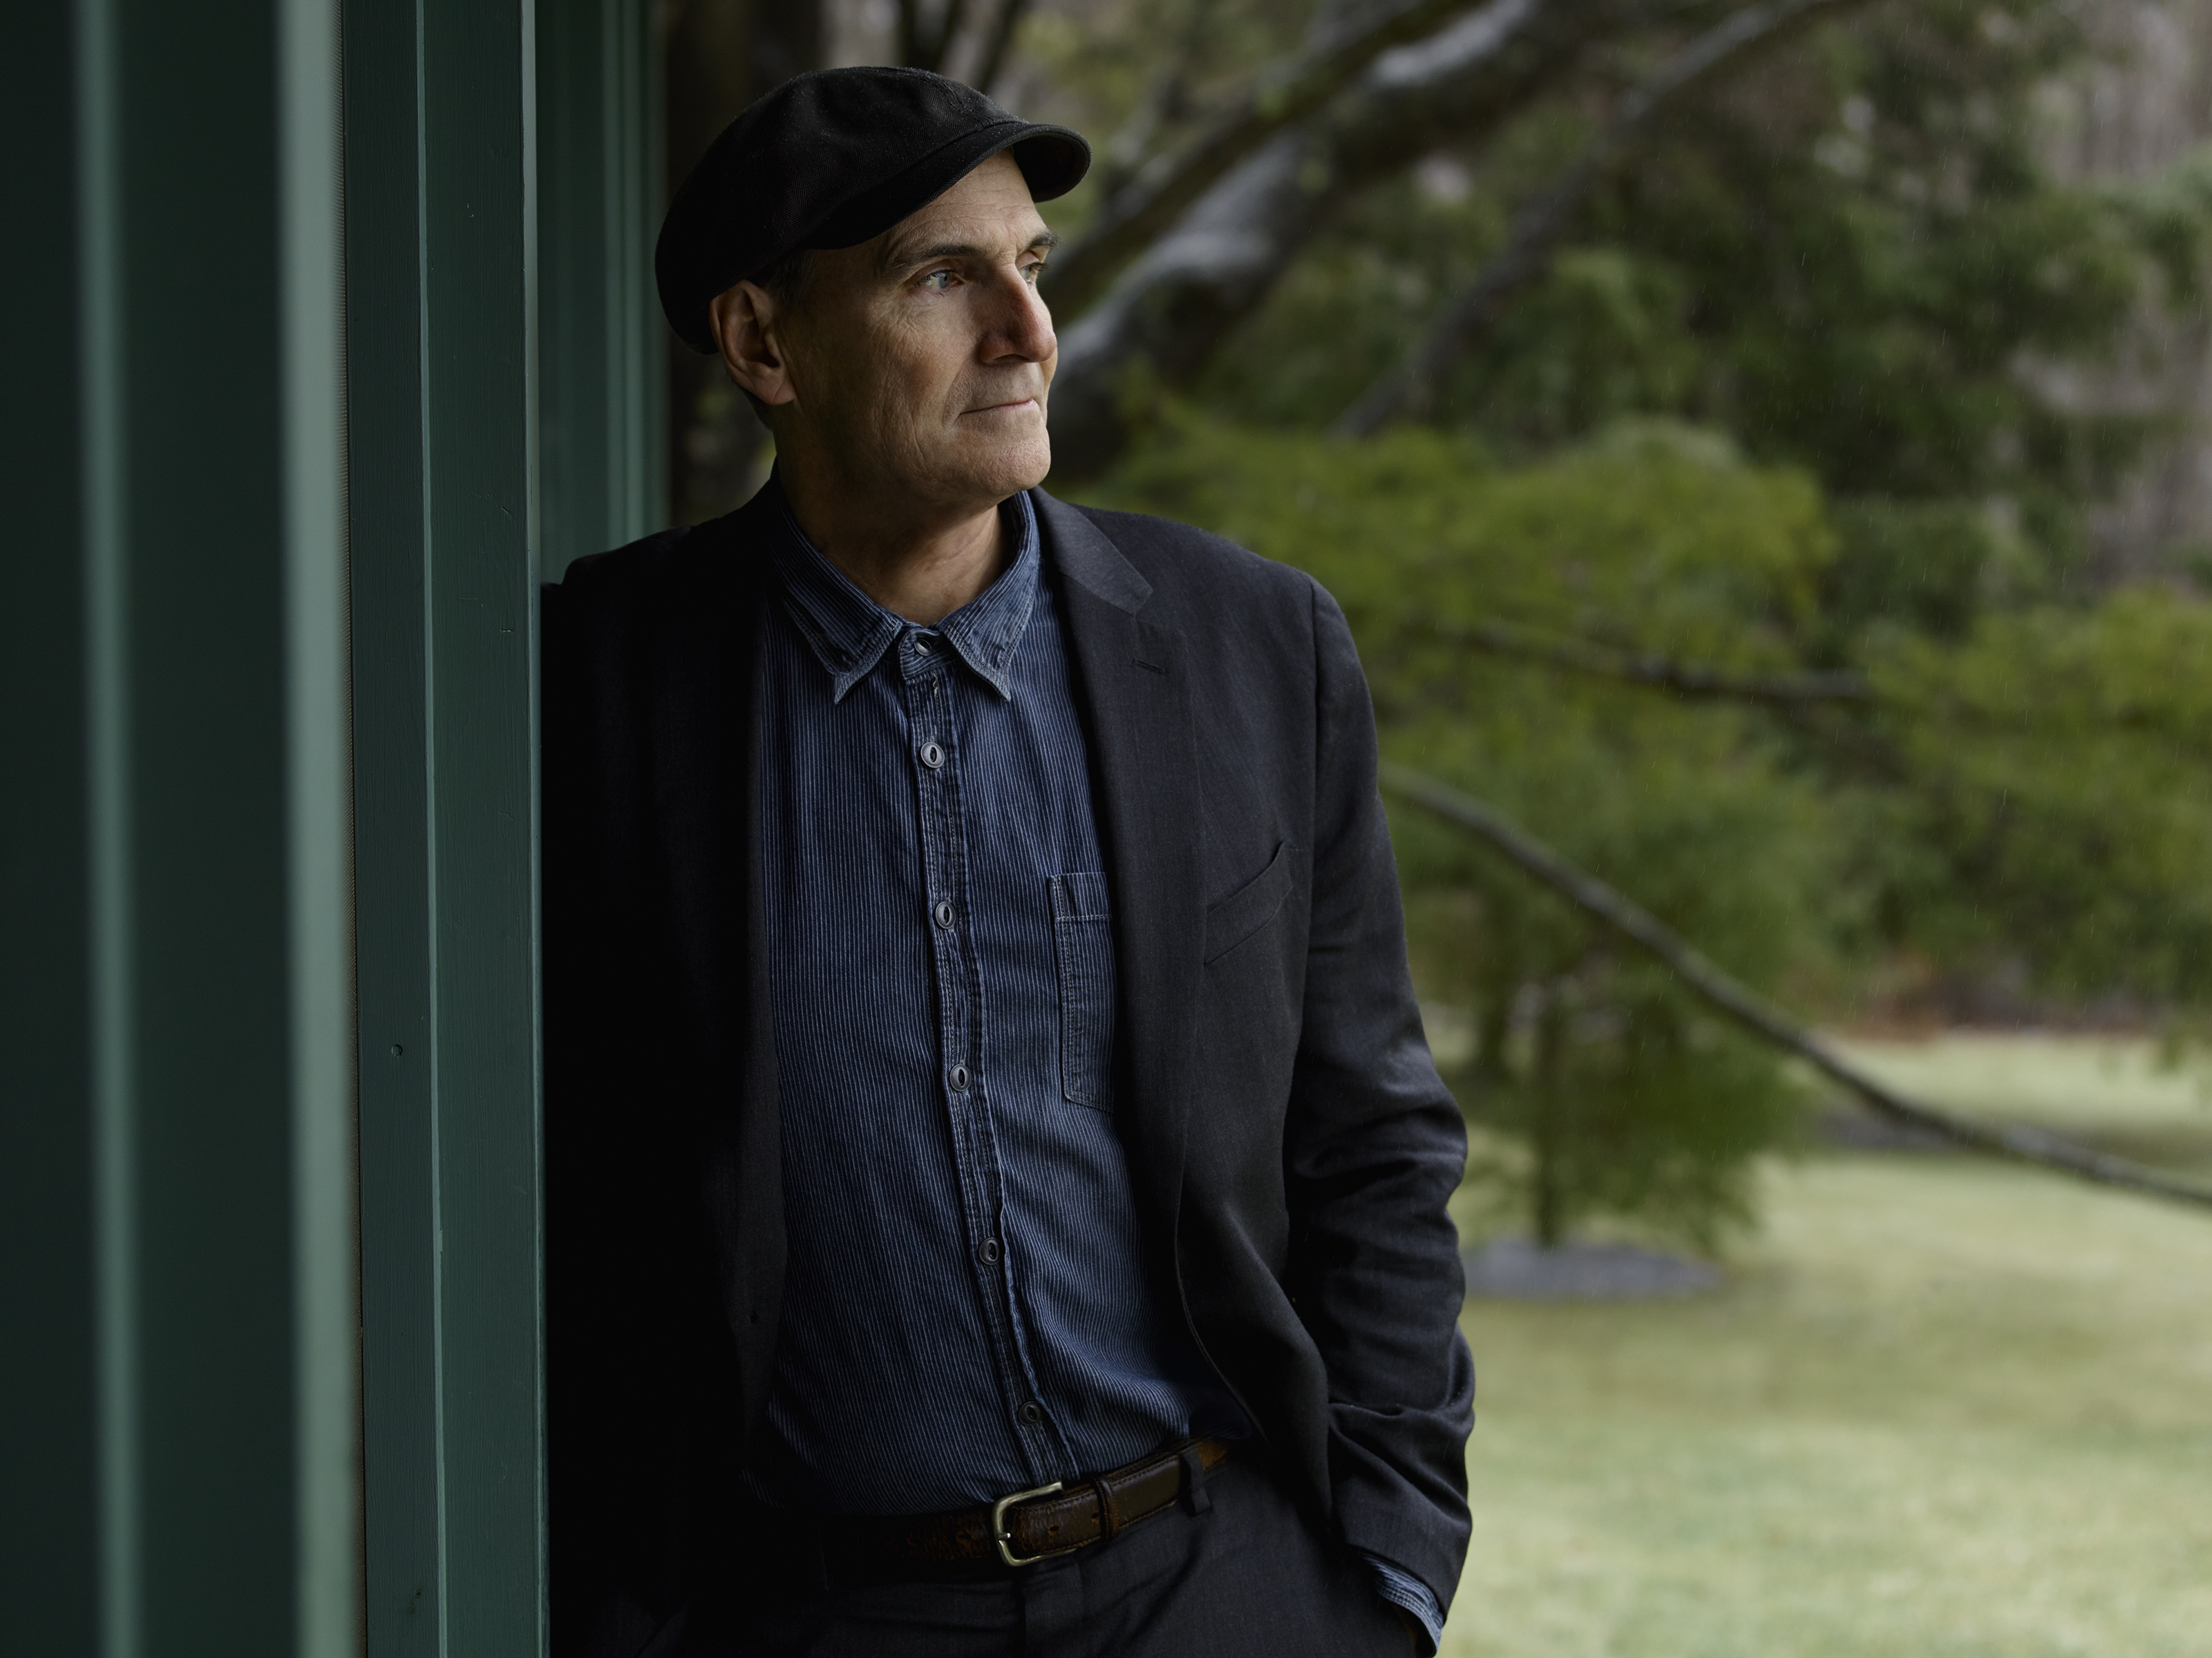 James Taylor & Bonnie Raitt Headed to the Smoothie King Center in August